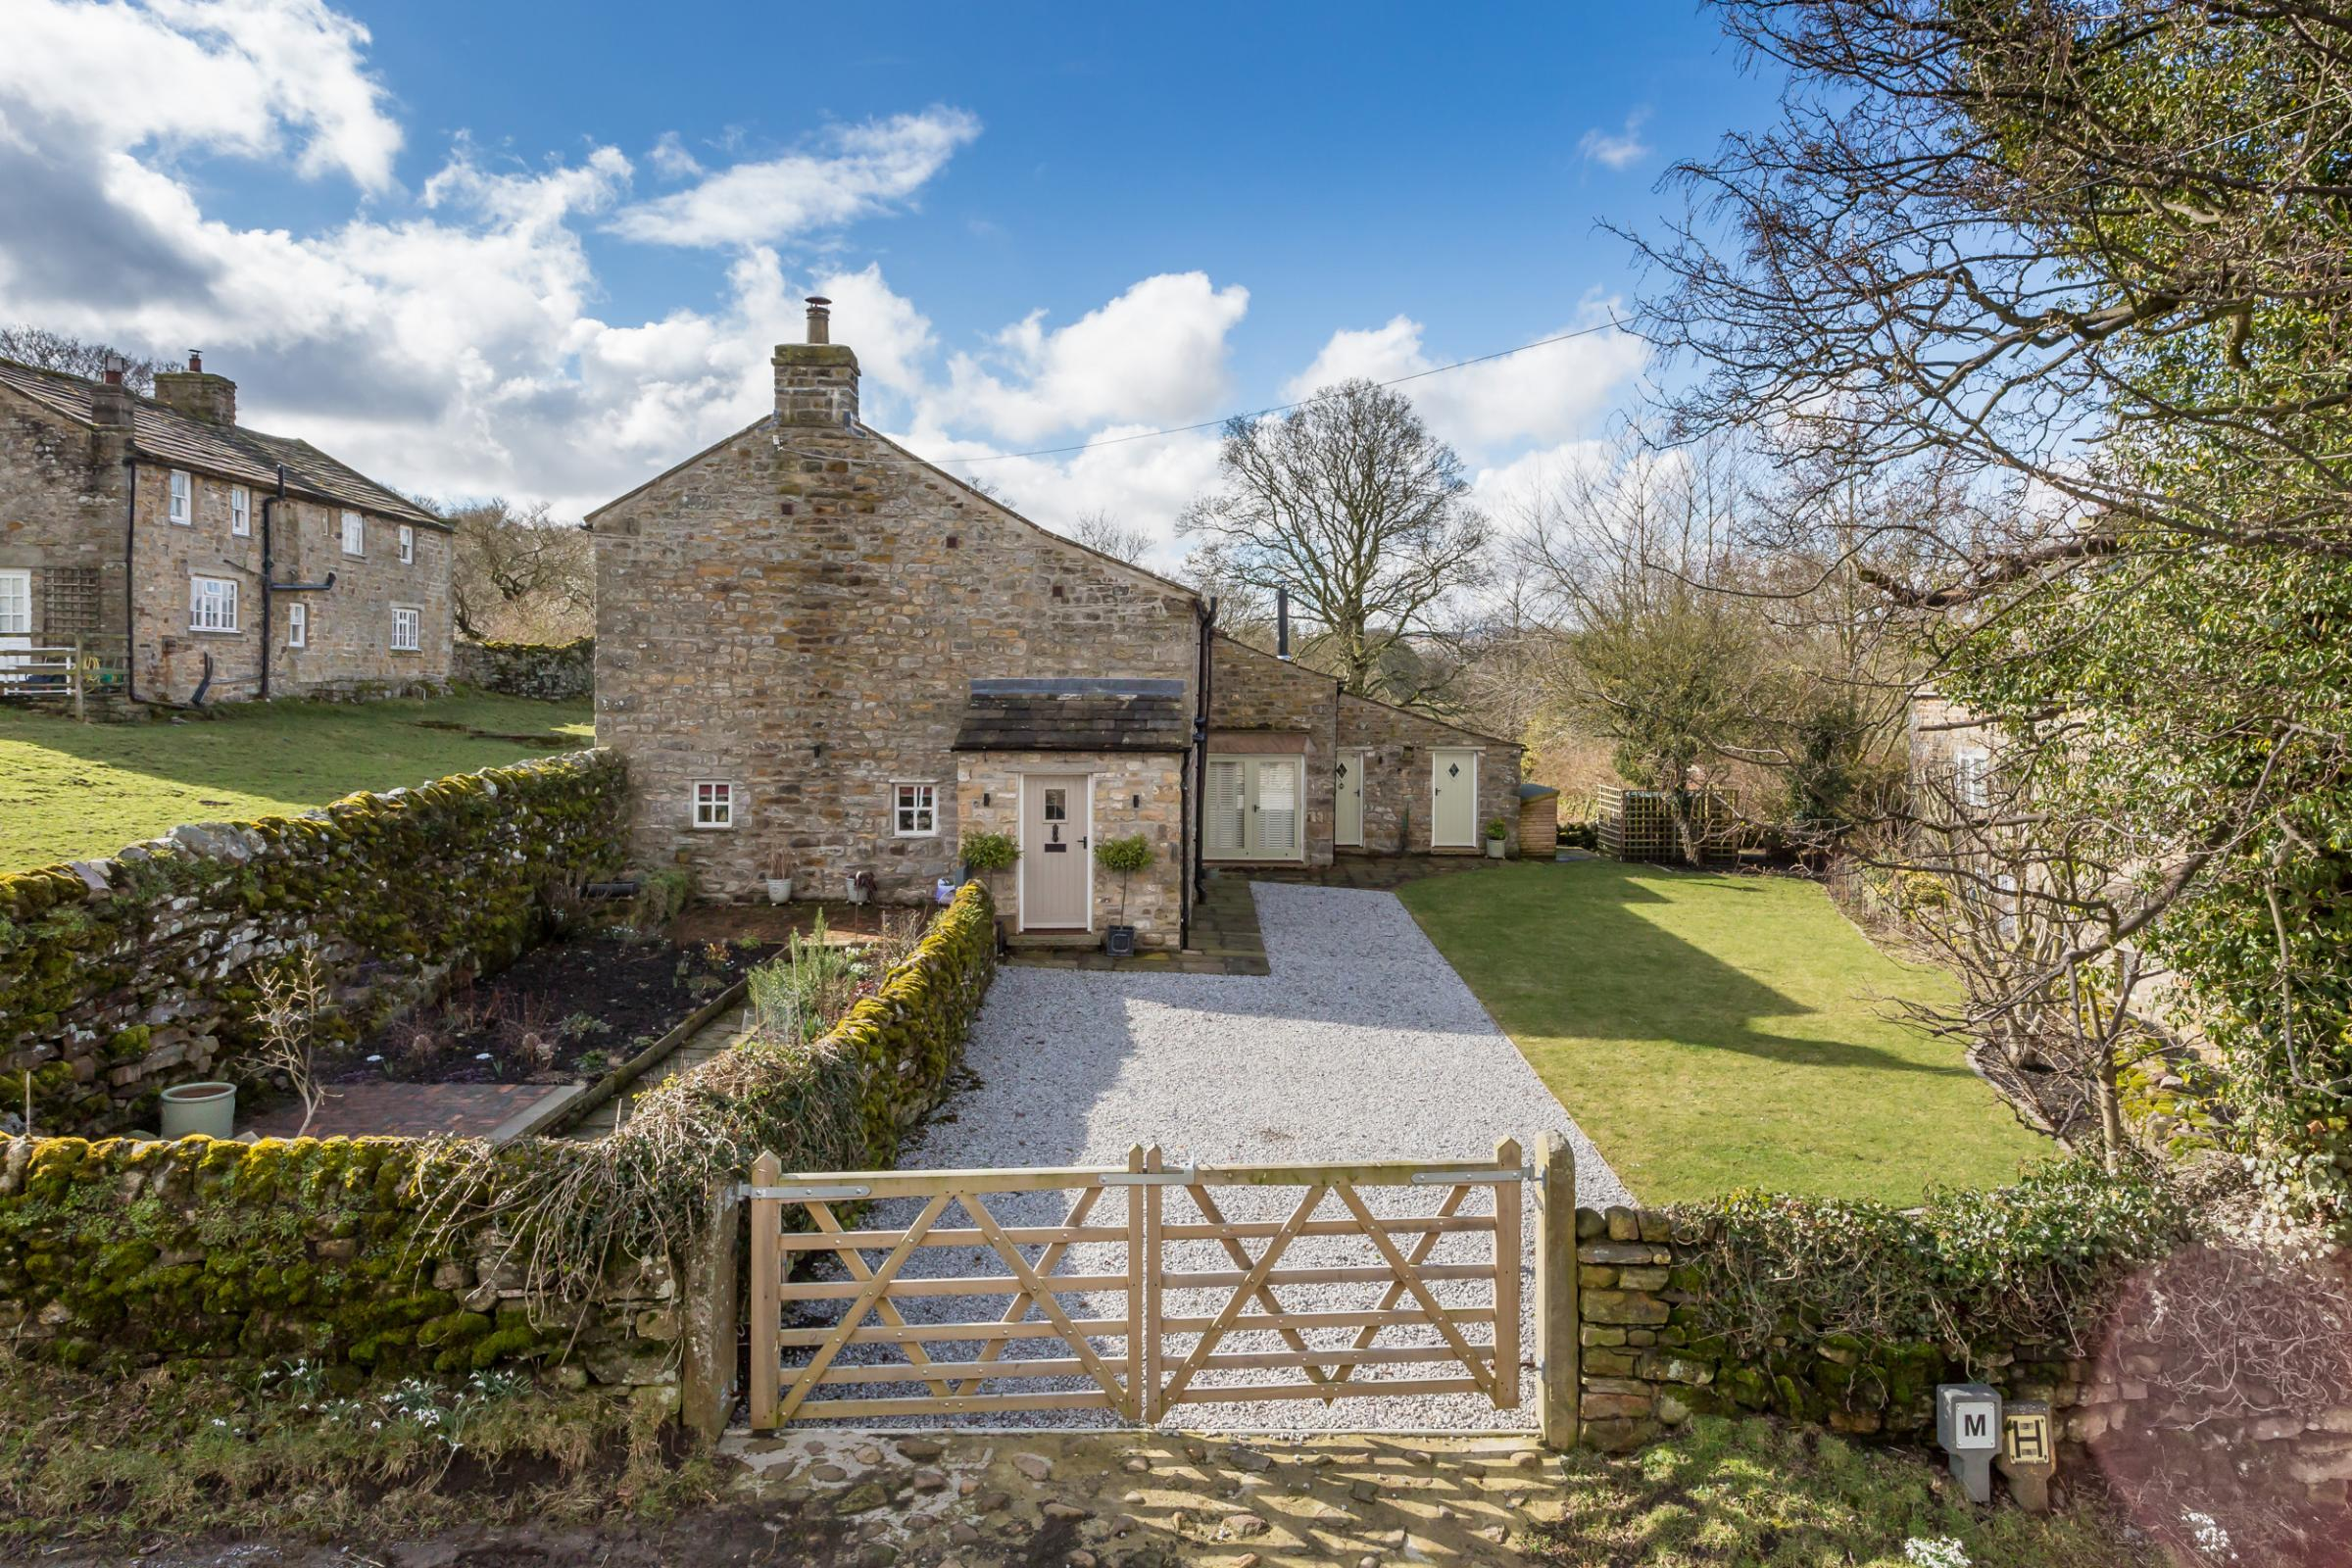 Brook Cottage is on the market at offers in excess of £475,000